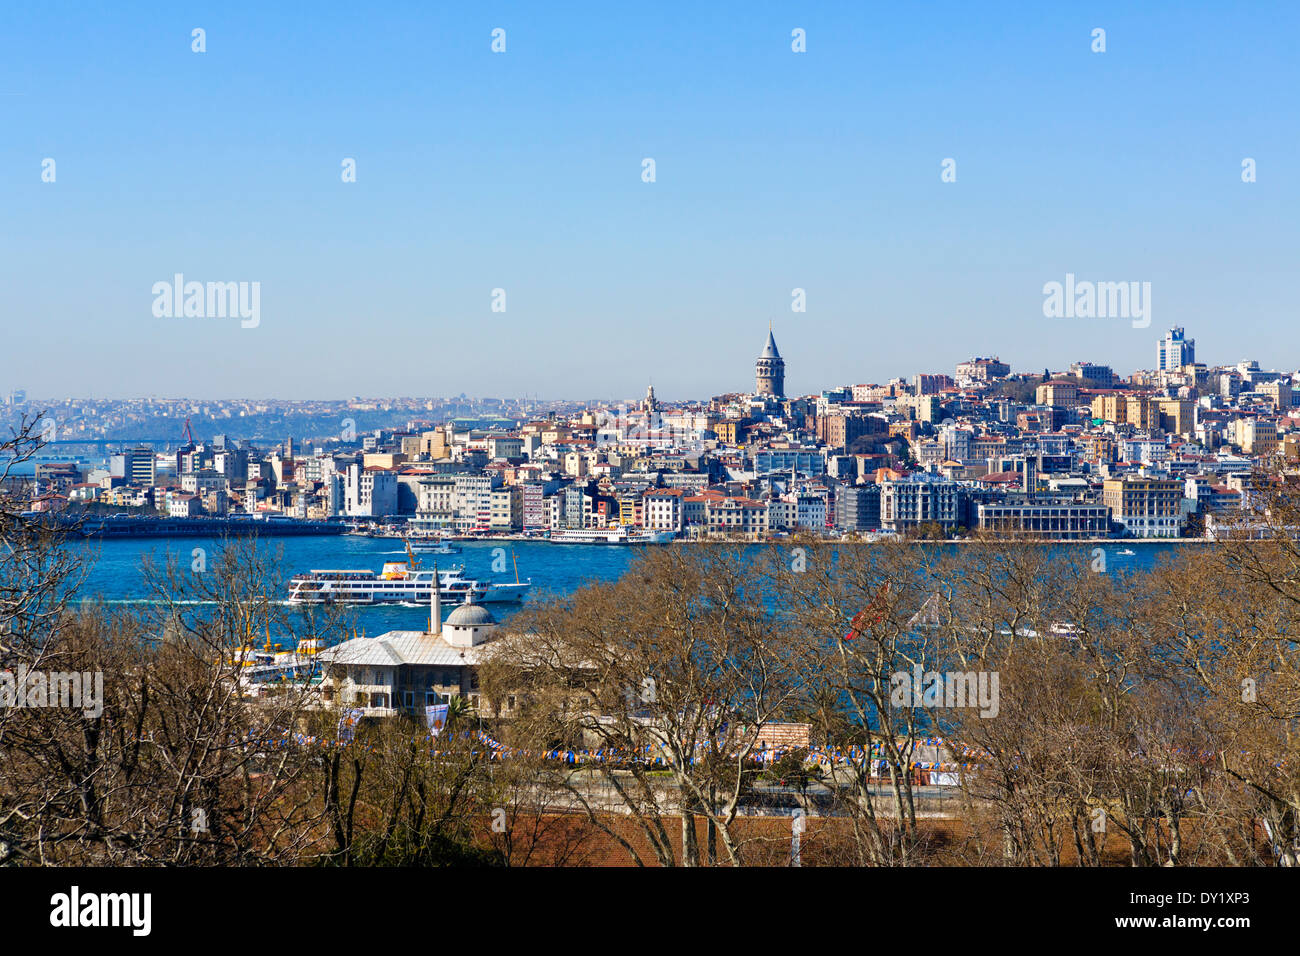 View from Mecidiye Kosku terrace in Fourth Court of Topkapi Palace looking over the Golden Horn to Galata, Istanbul,Turkey Stock Photo